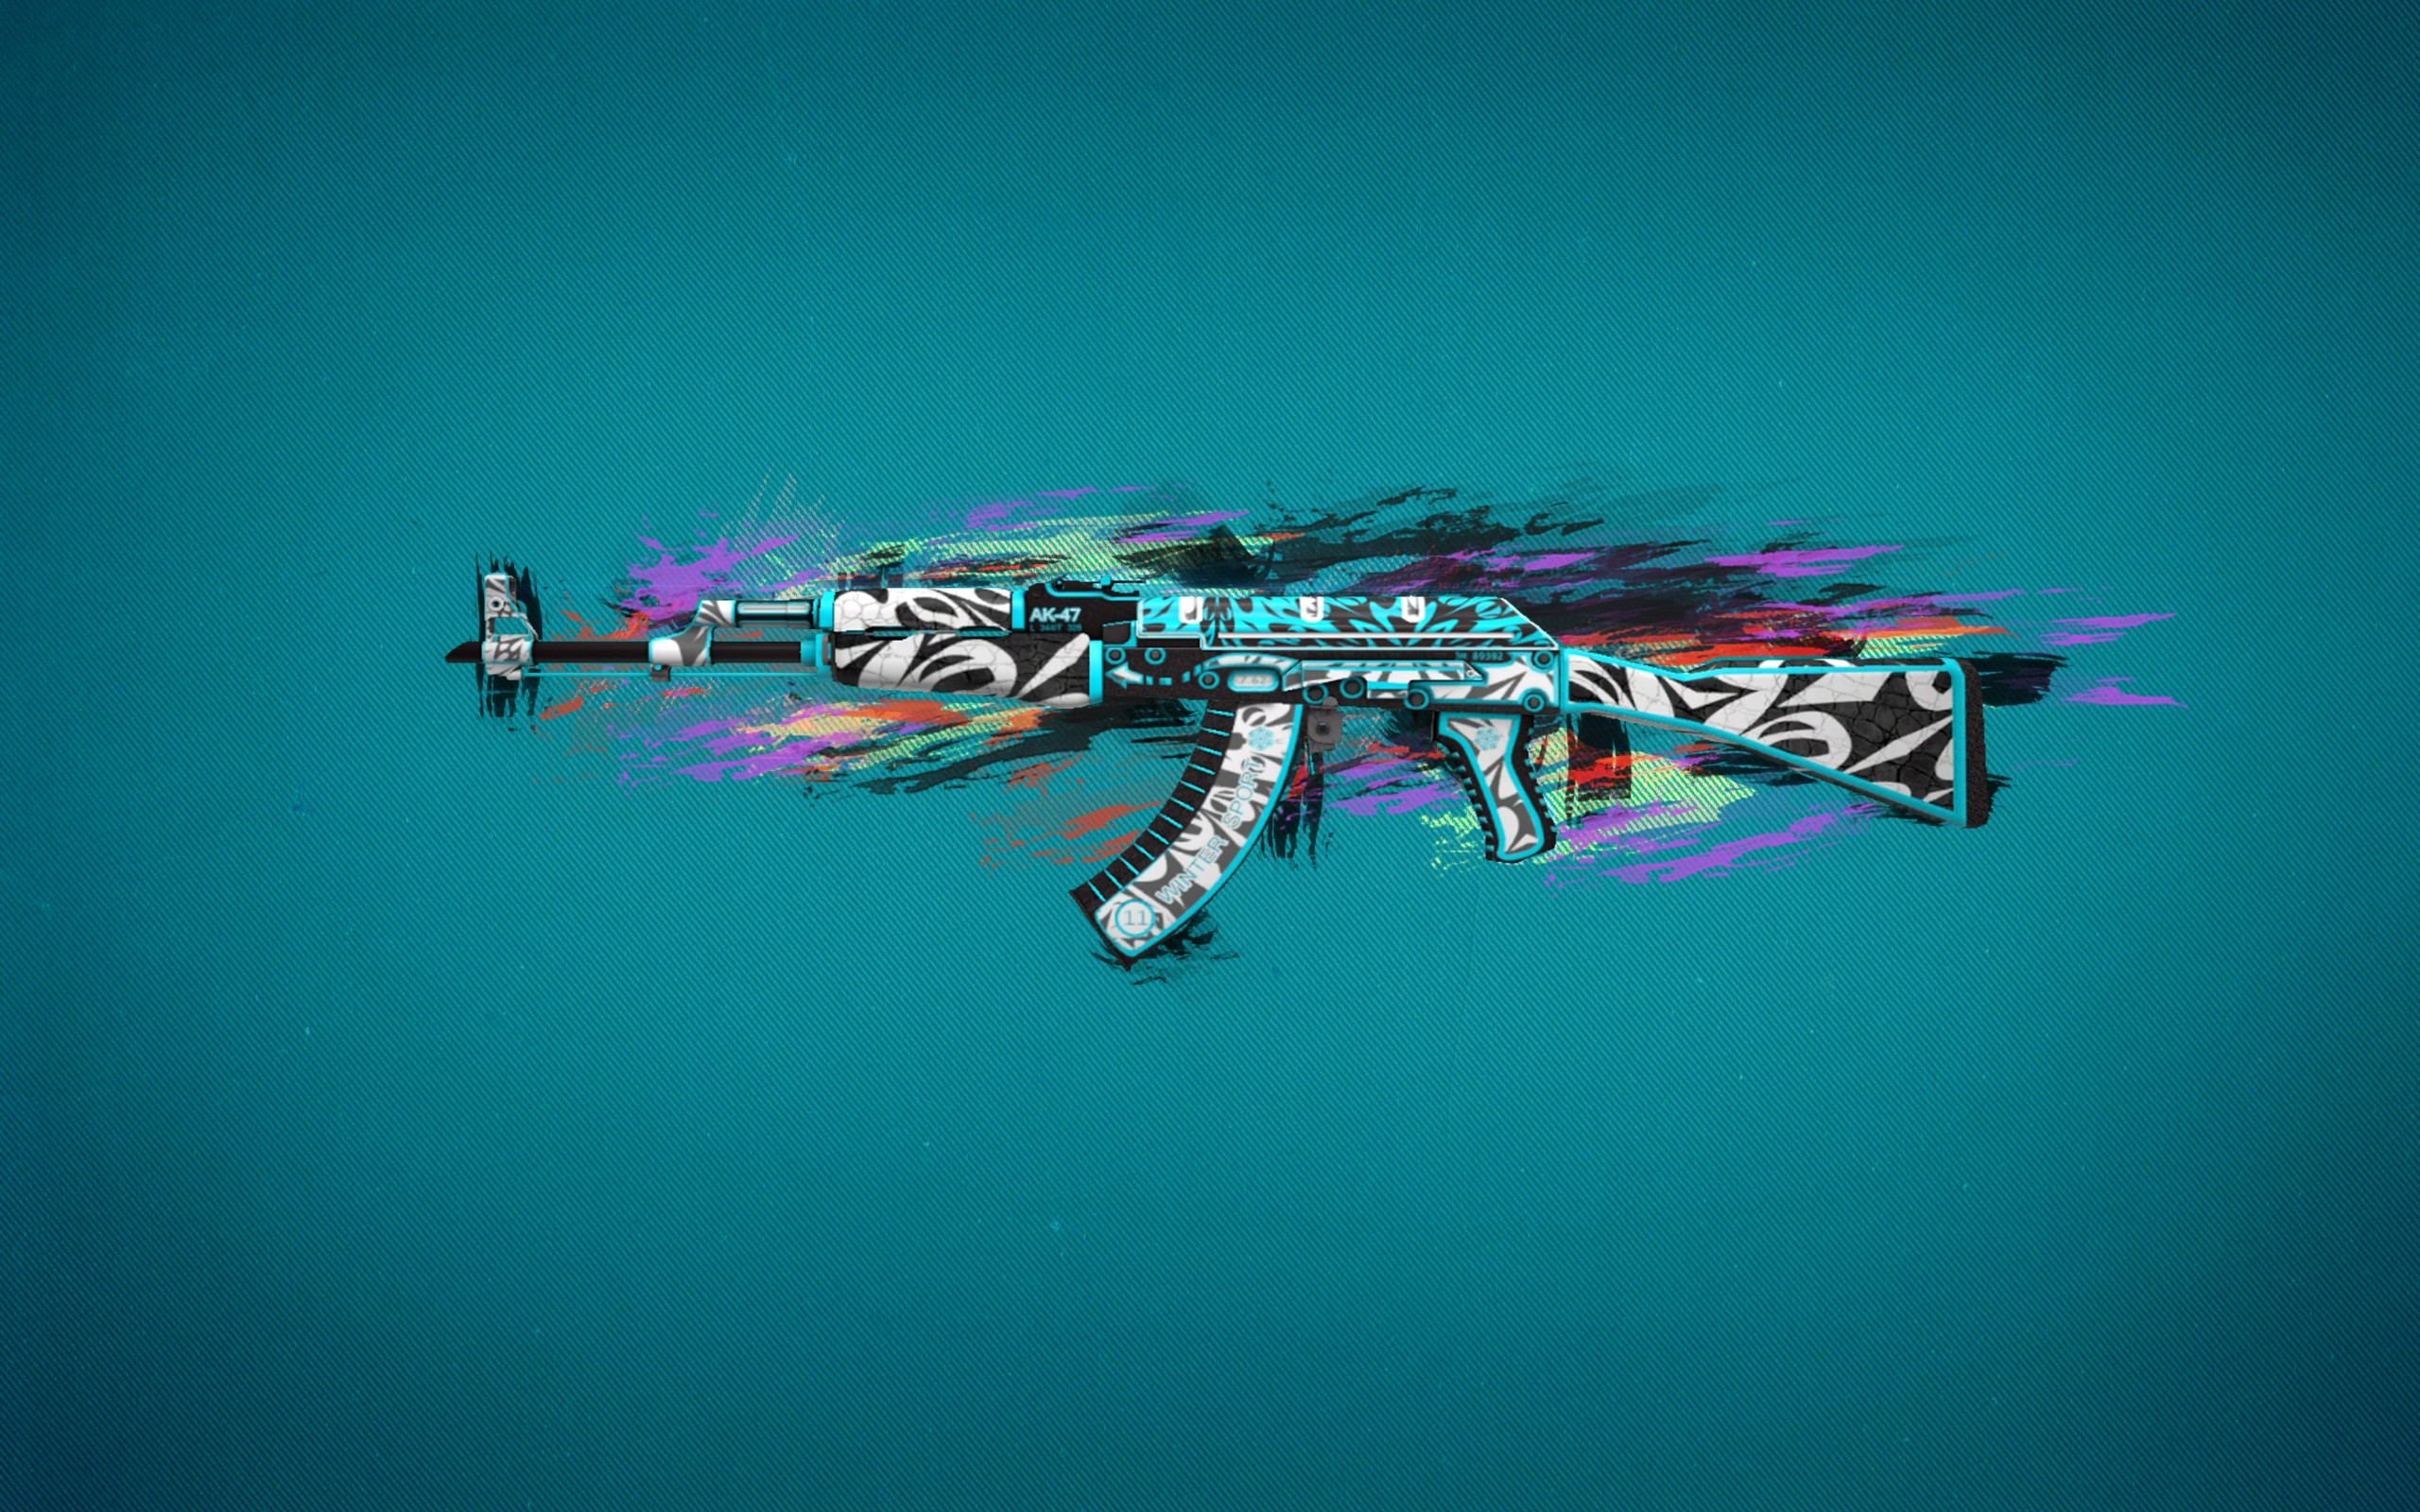 Ak47 Colorful Art 2048x1152 Resolution